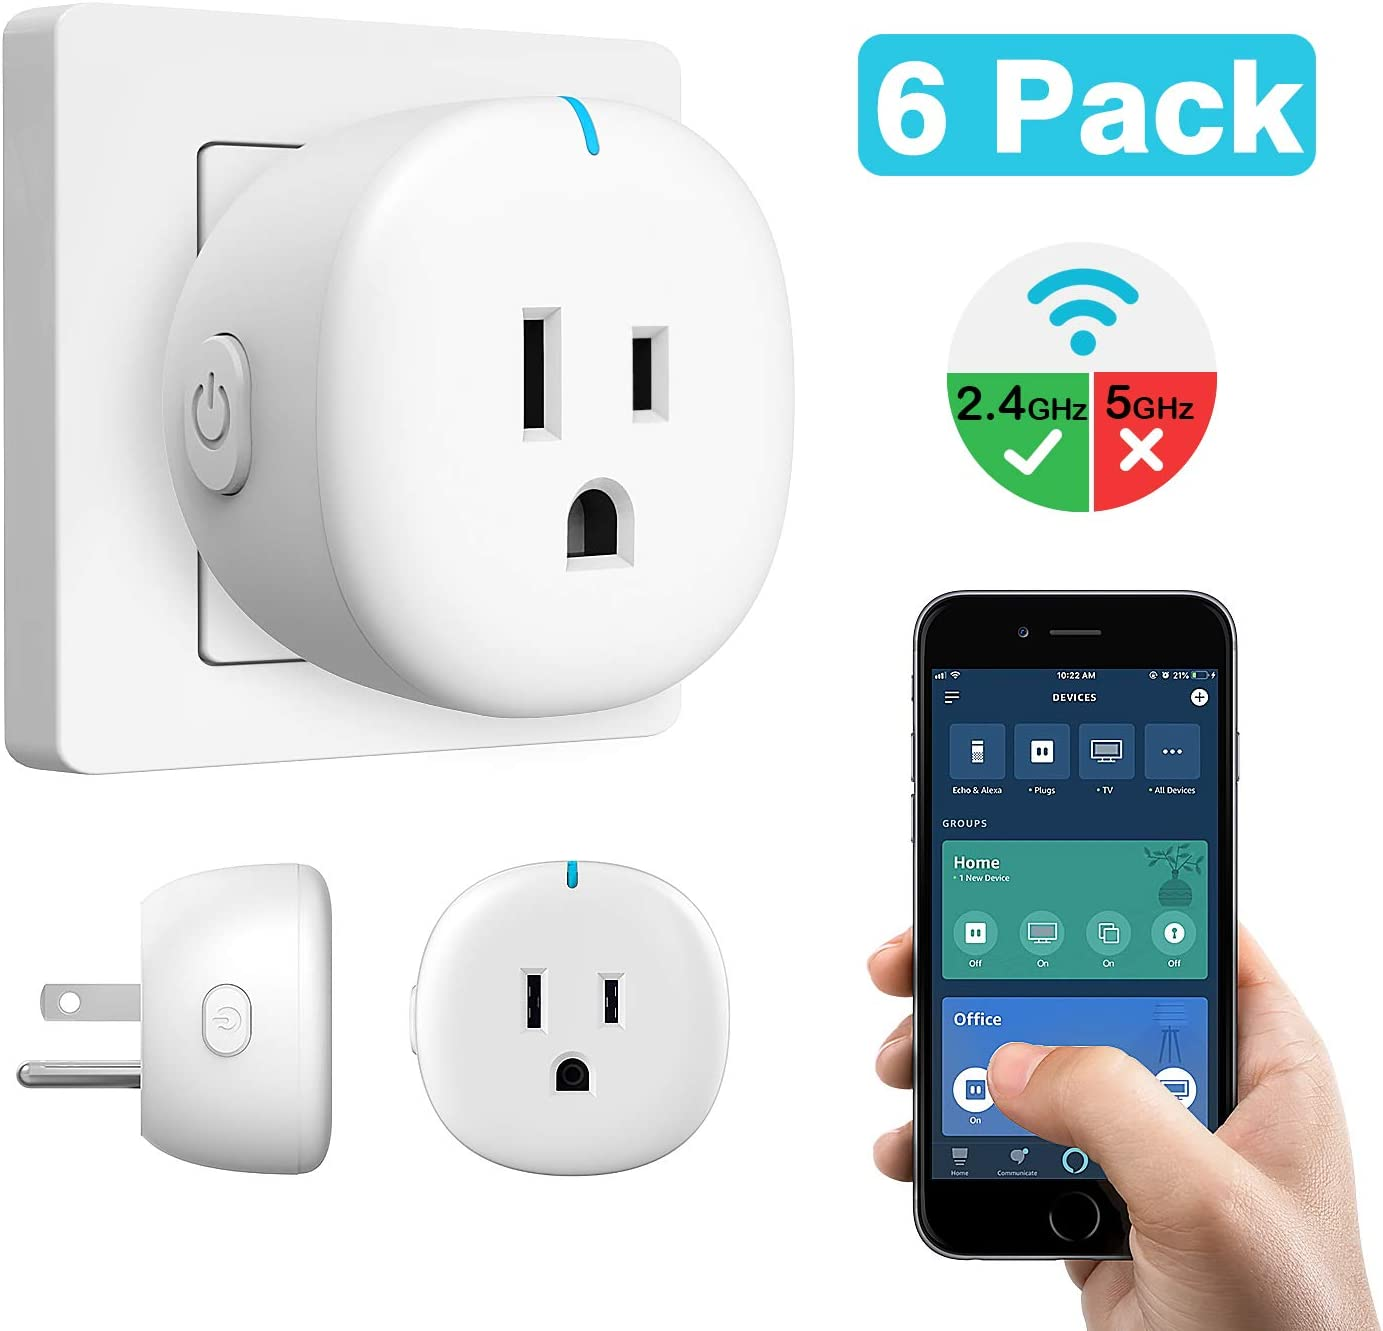 MoKo WiFi Smart Plug, 6 Pack Mini WiFi Outlet Mini Socket Work with Alexa Echo, Google Home, SmartThings, APP Remote Control Timer Plug, 10A Only Supports 2.4GHz Network No Hub Required, White